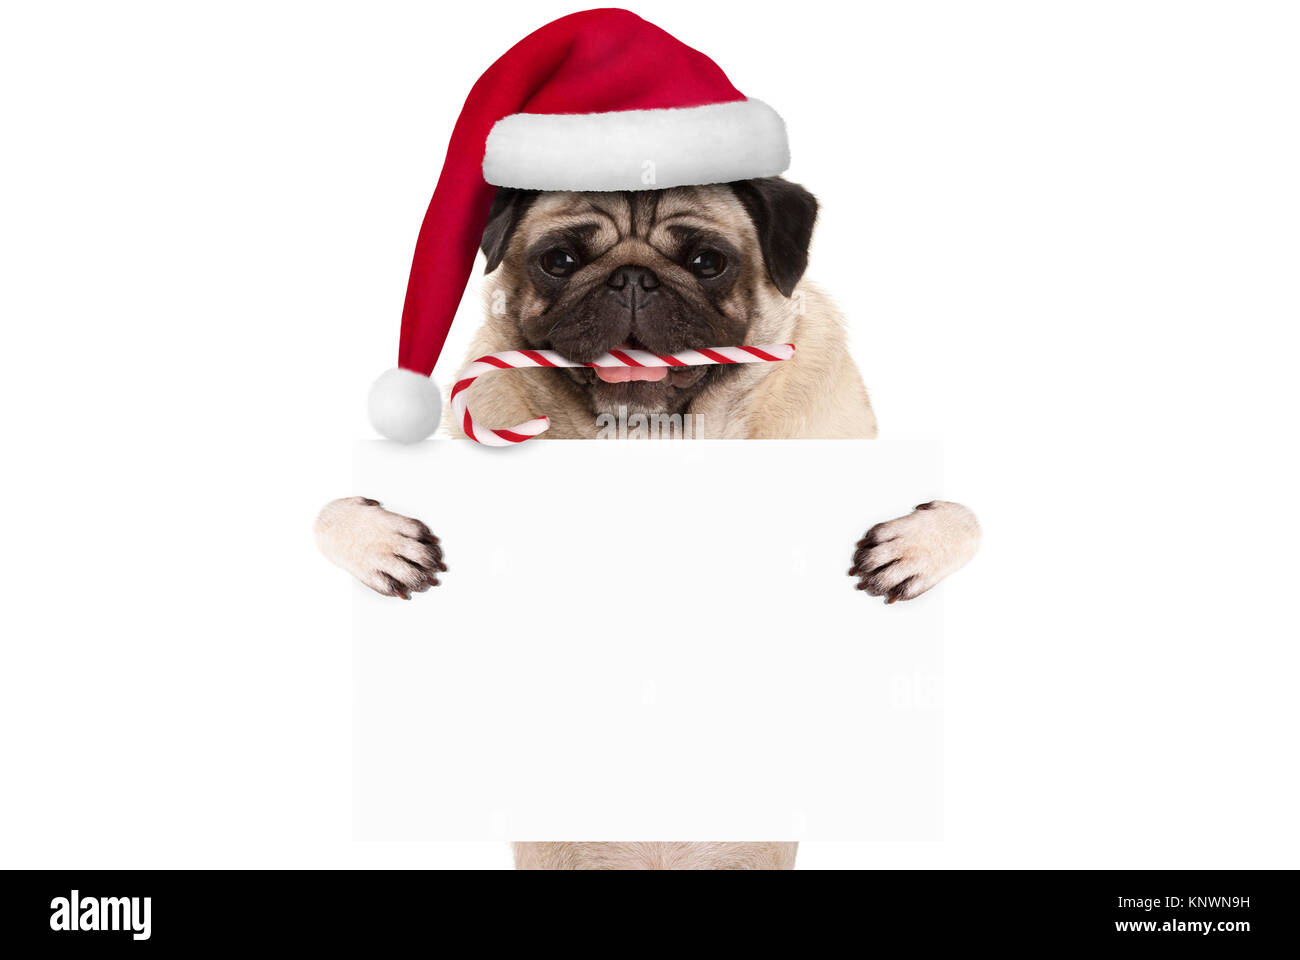 cute Christmas pug dog with santa hat and candy cane, holding up blank white banner card, isolated on white background - Stock Image